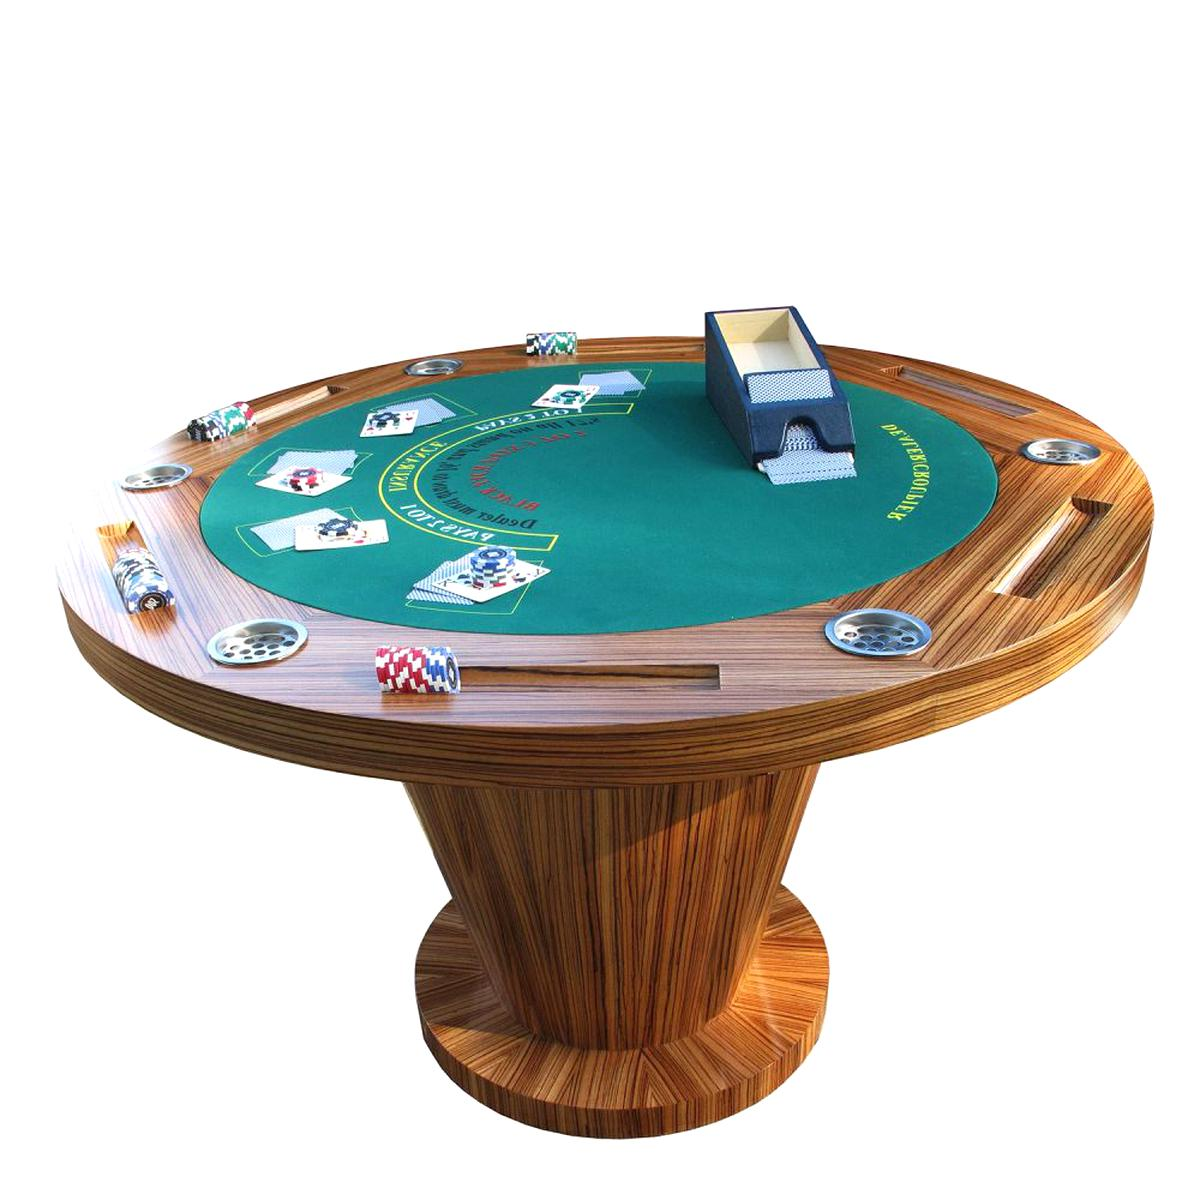 Used casino table for sale nrl finals week 2 games